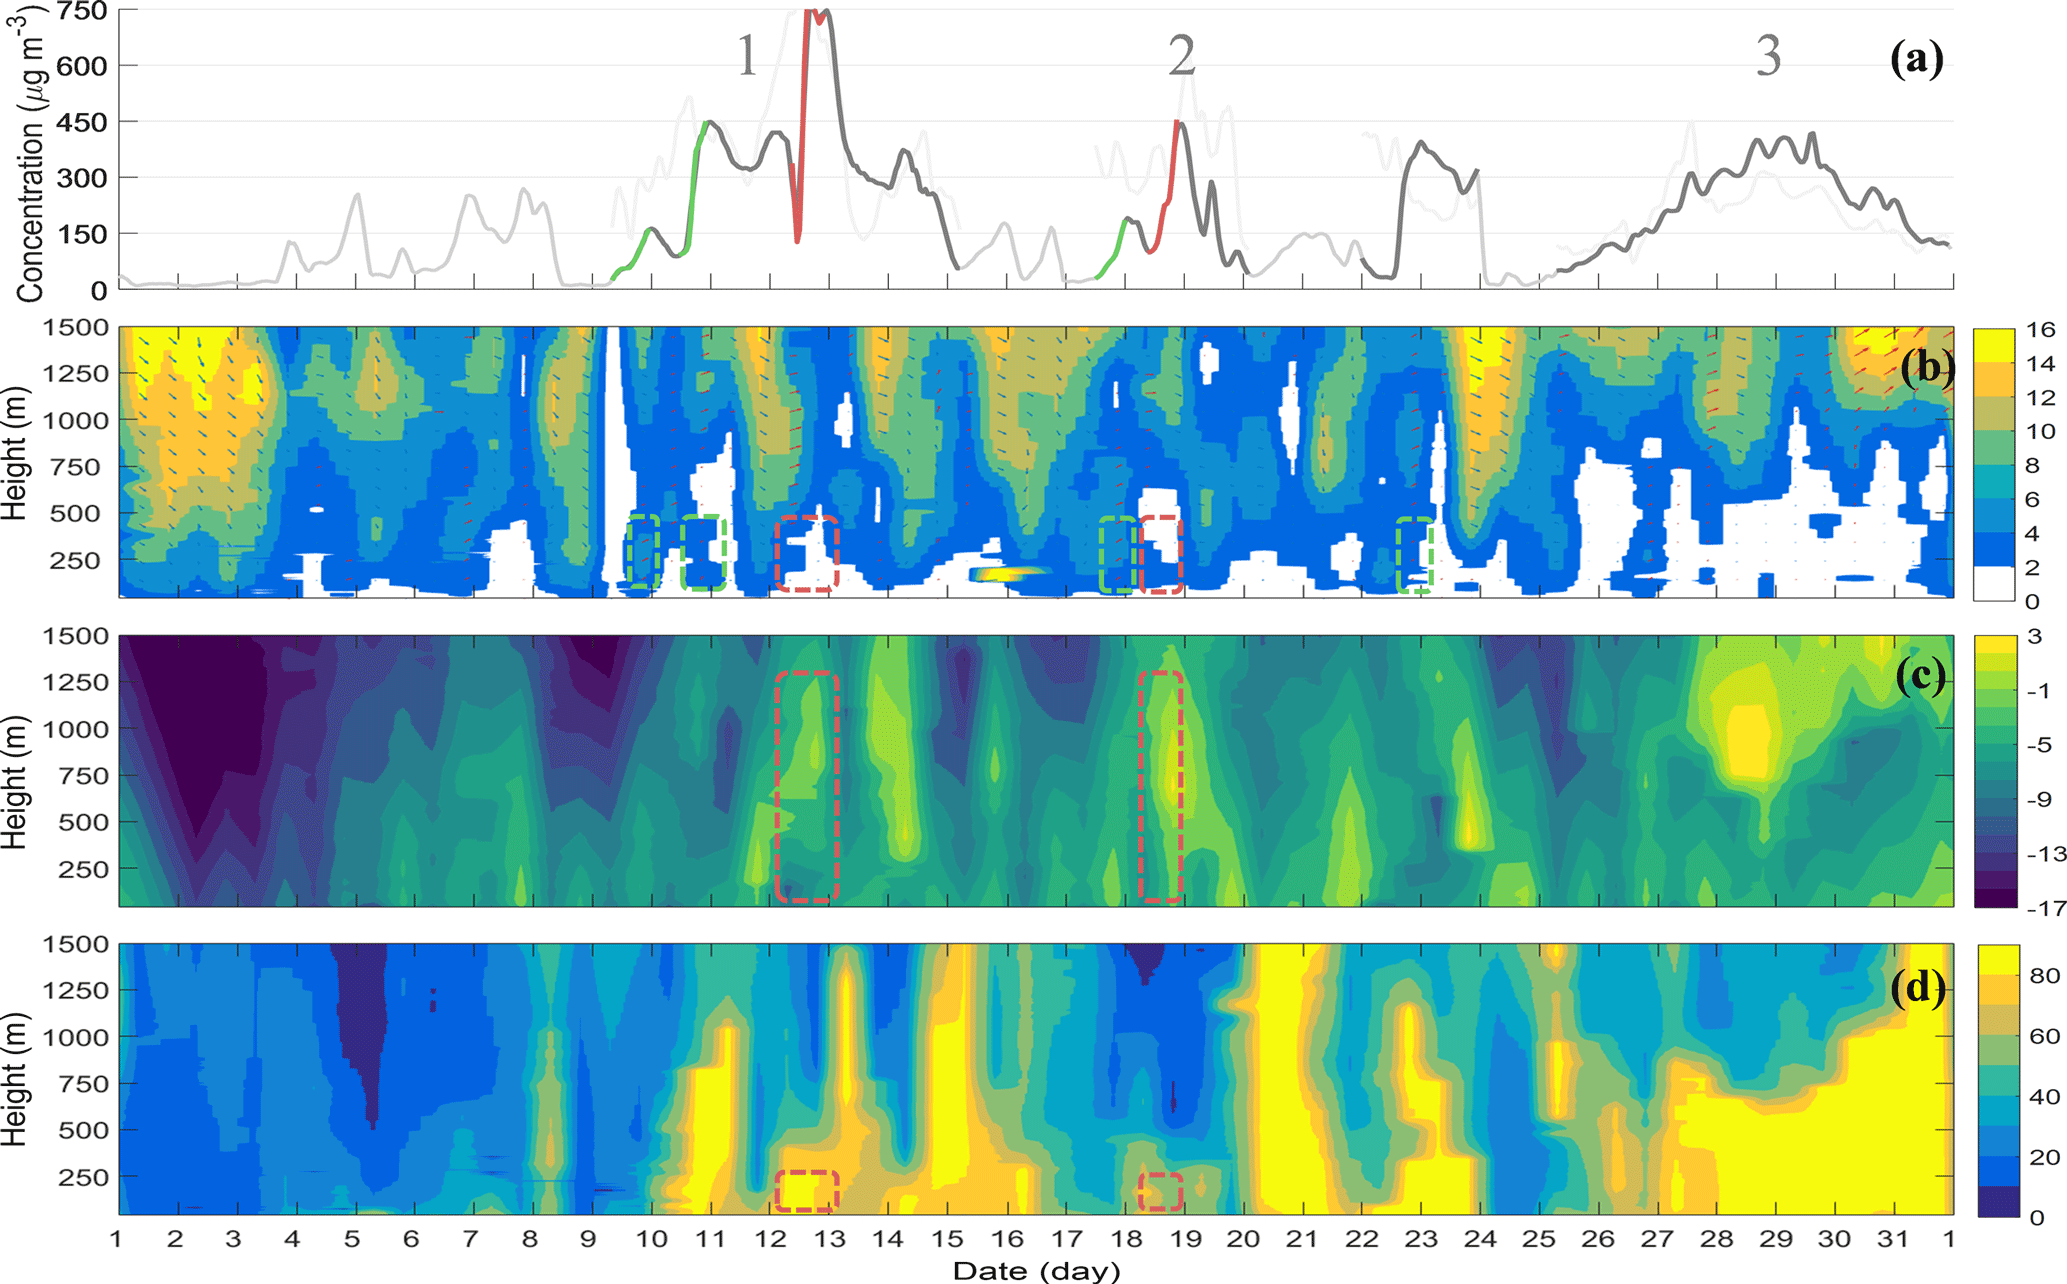 ACP - Feedback effects of boundary-layer meteorological